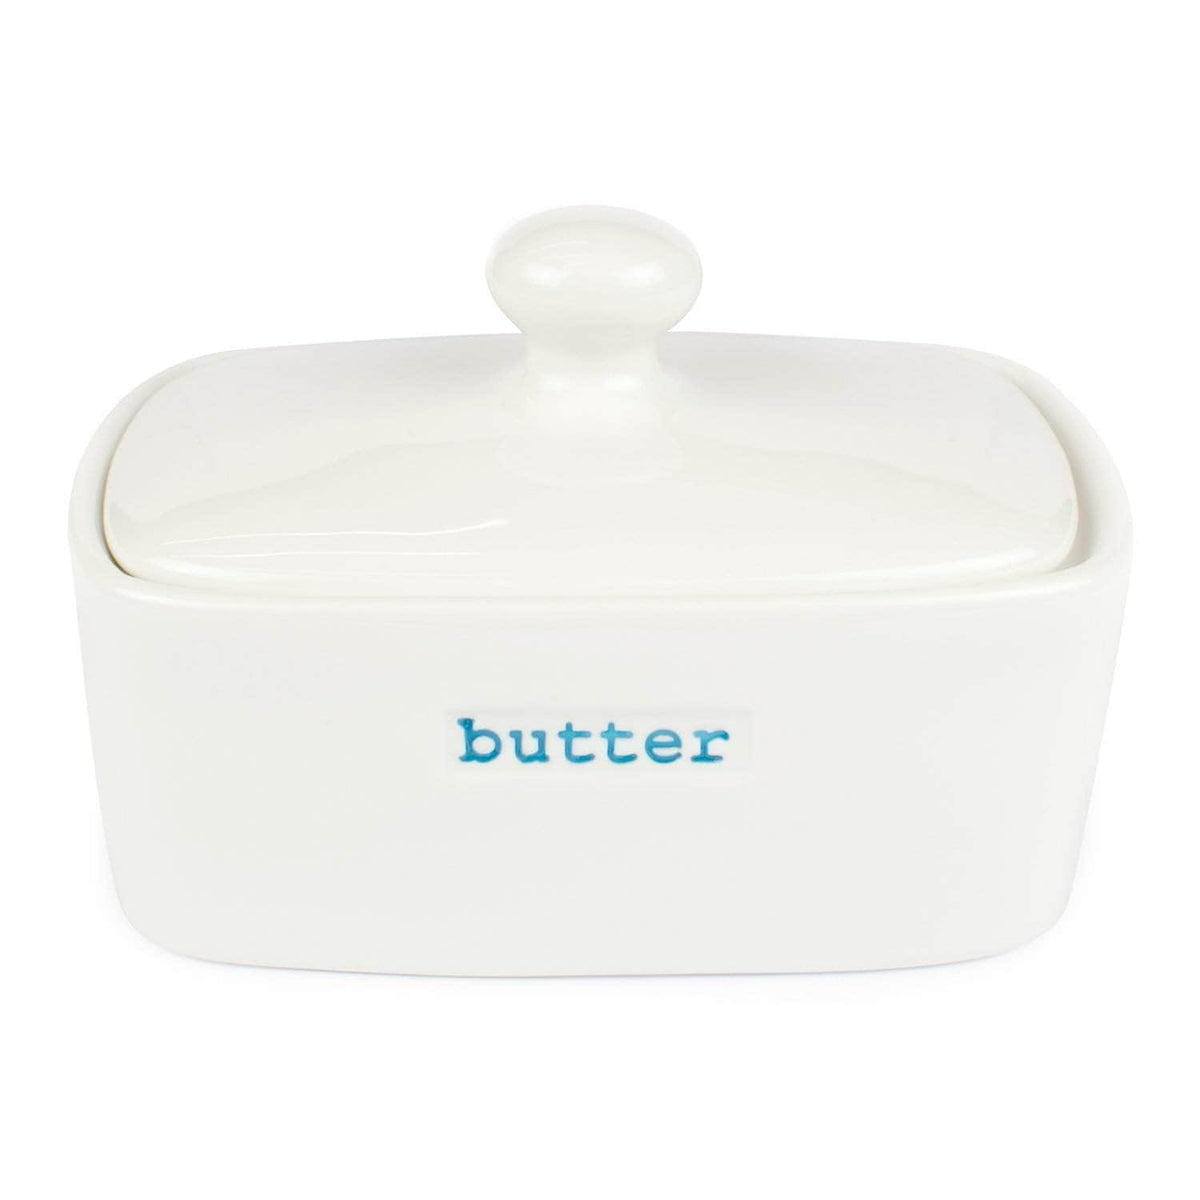 *New* Butter dish in white vitreous enamel